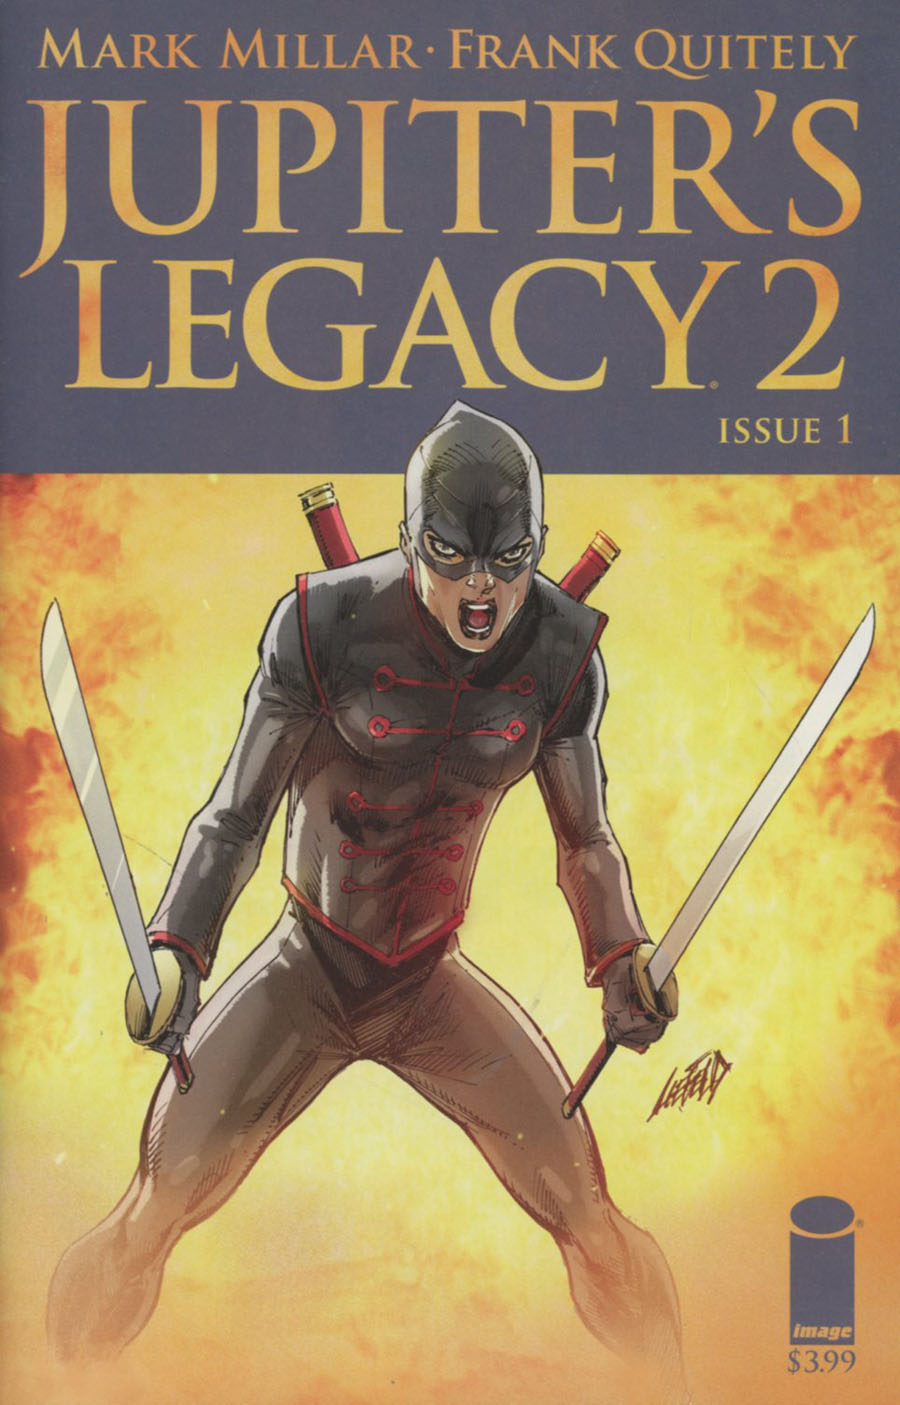 Jupiters Legacy Vol 2 #1 Cover G Variant Rob Liefeld Cover